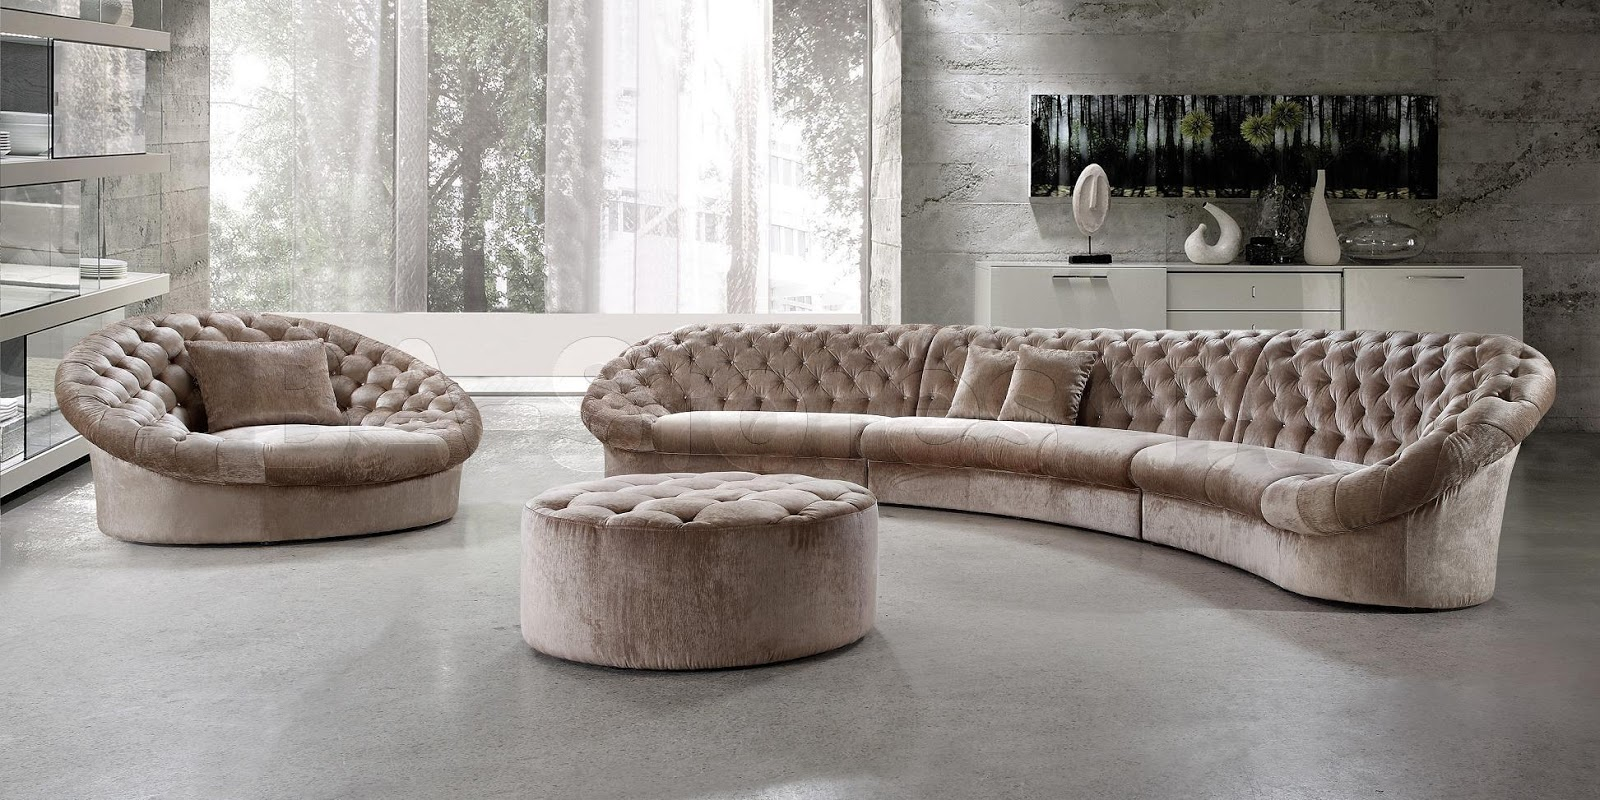 Modern Furniture Modern sofa beautiful designs